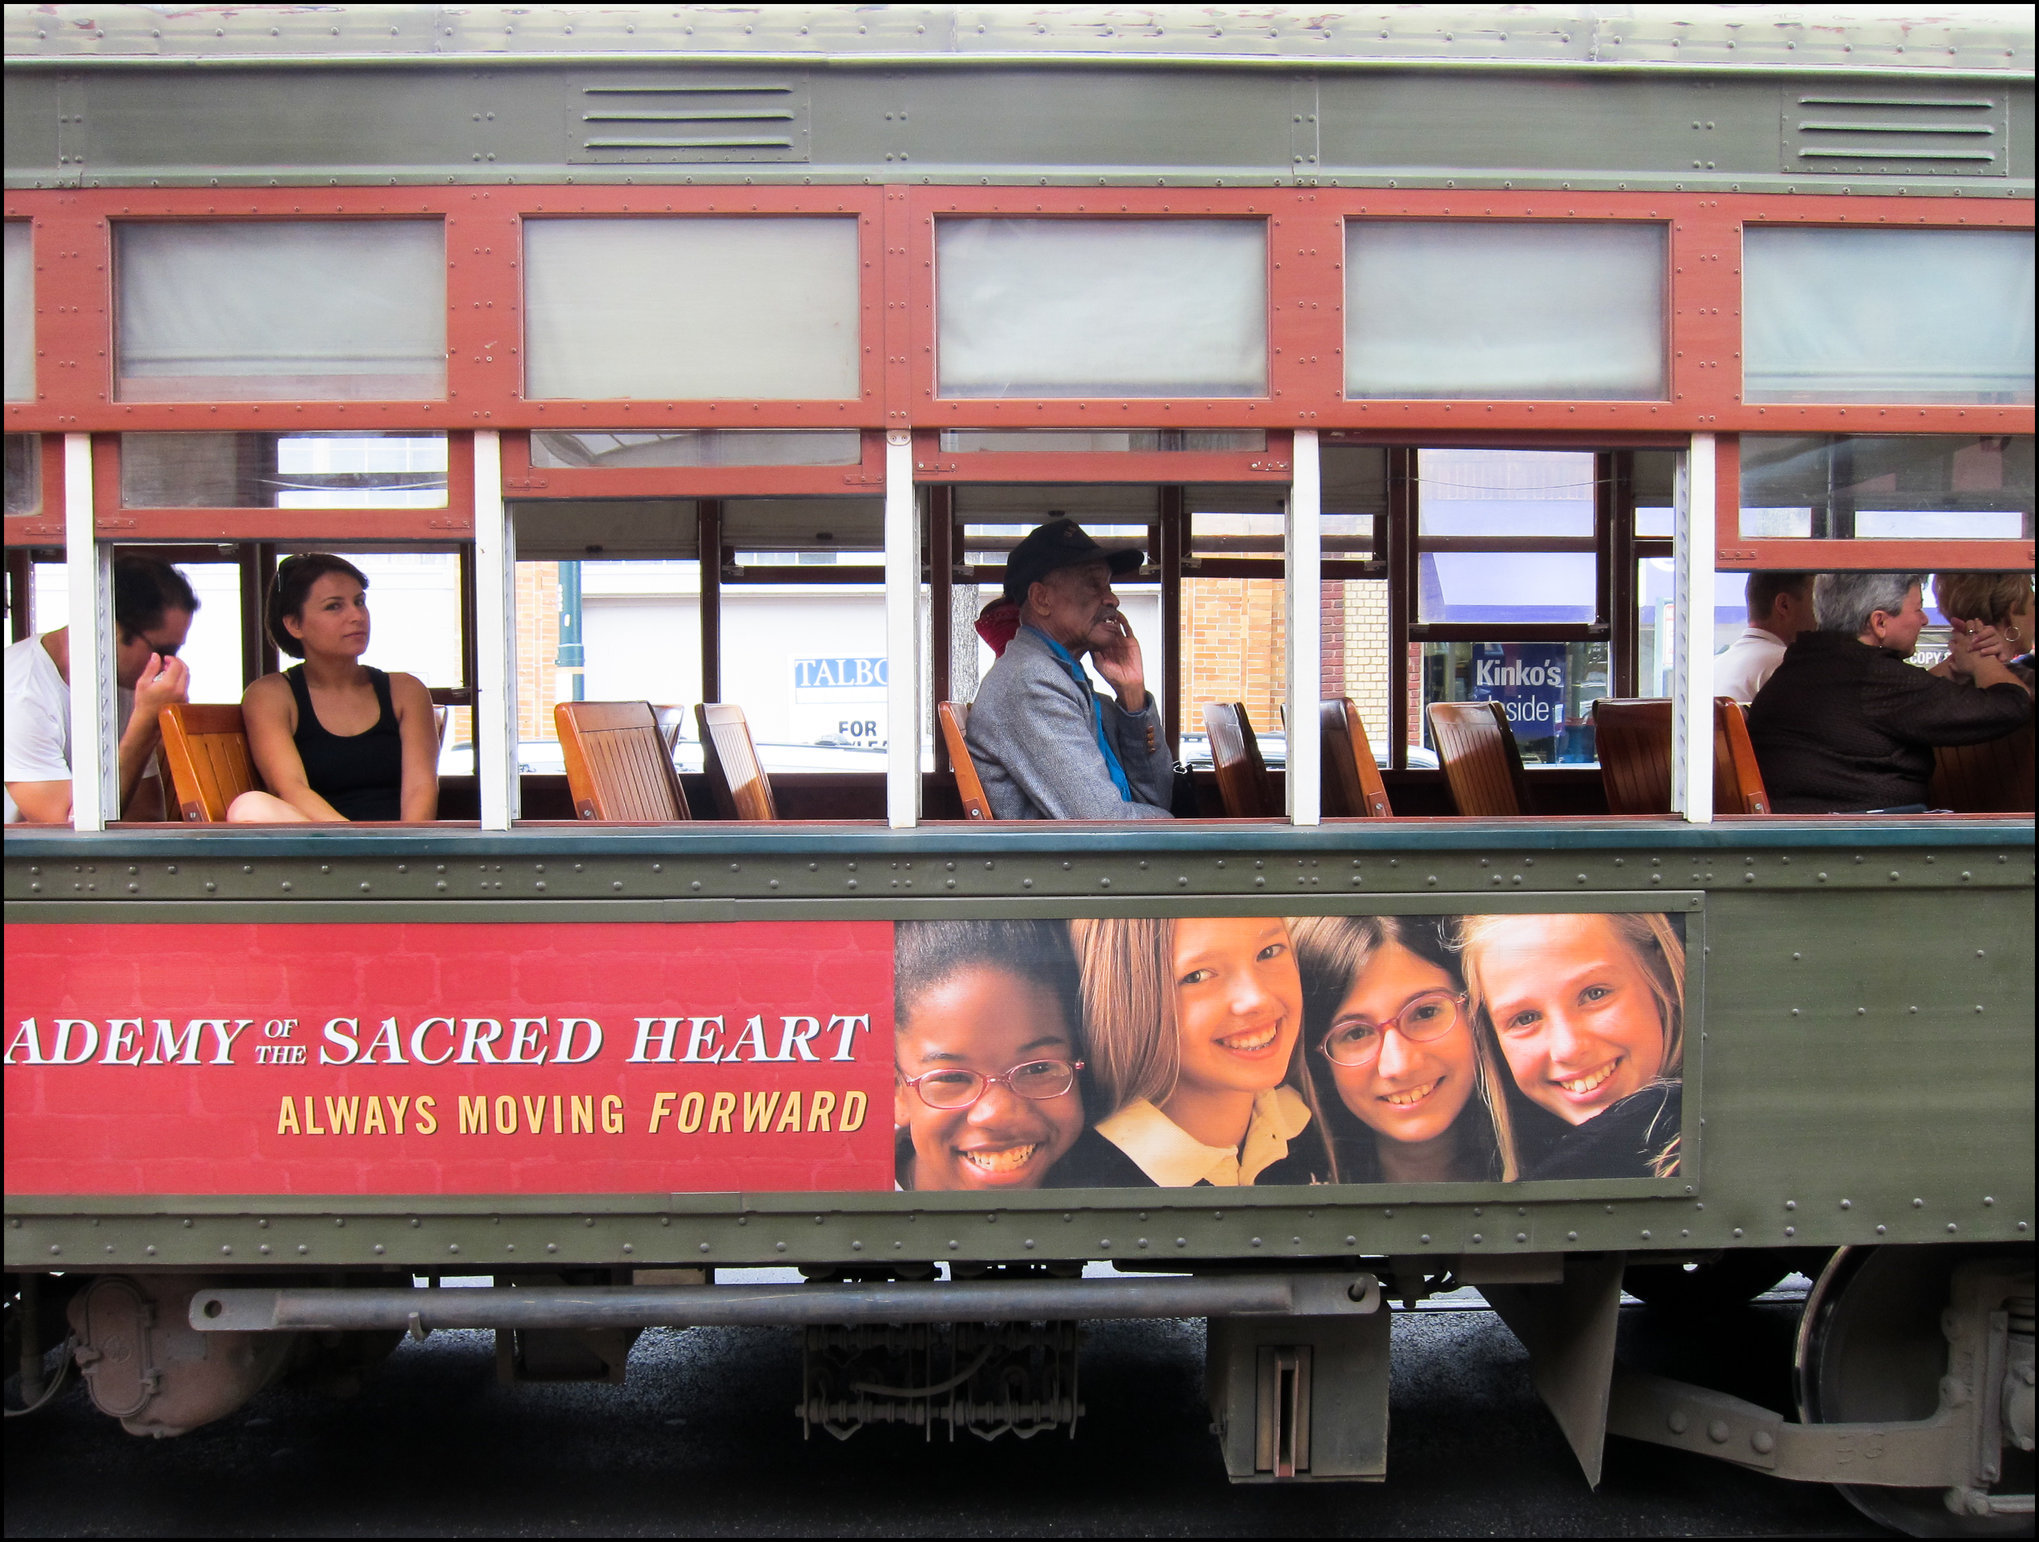 Tramway, New Orleans, 2011